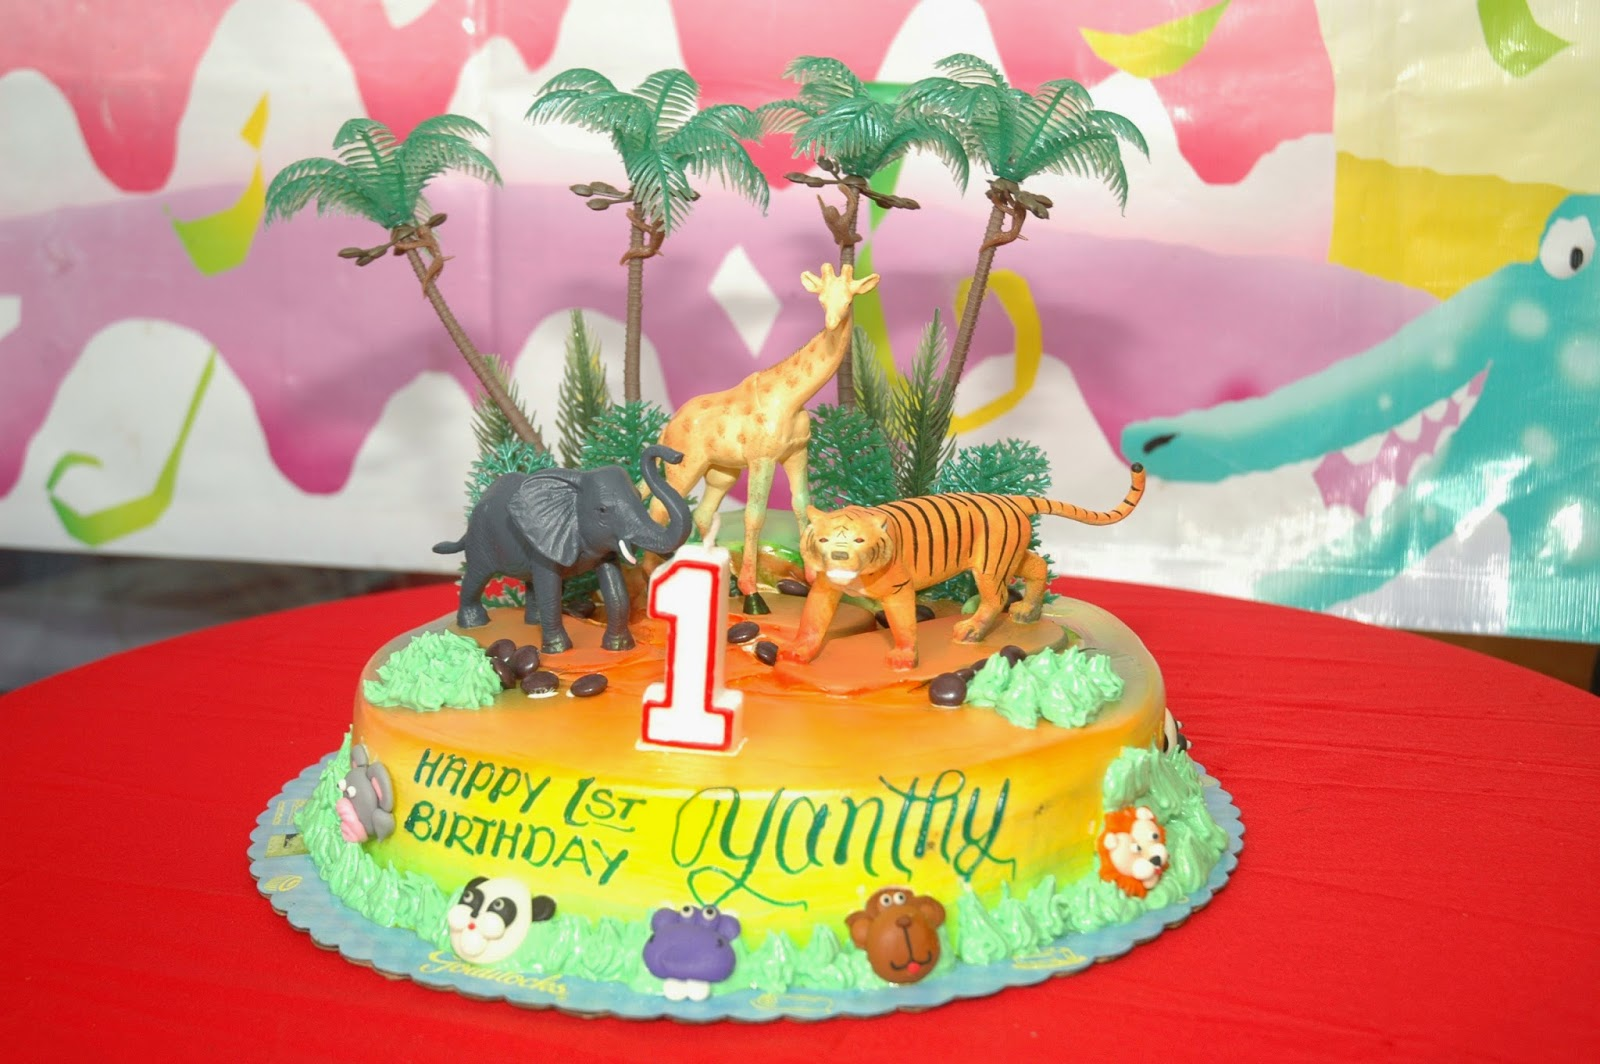 goldilocks personalized birthday cakes - 28 images ...